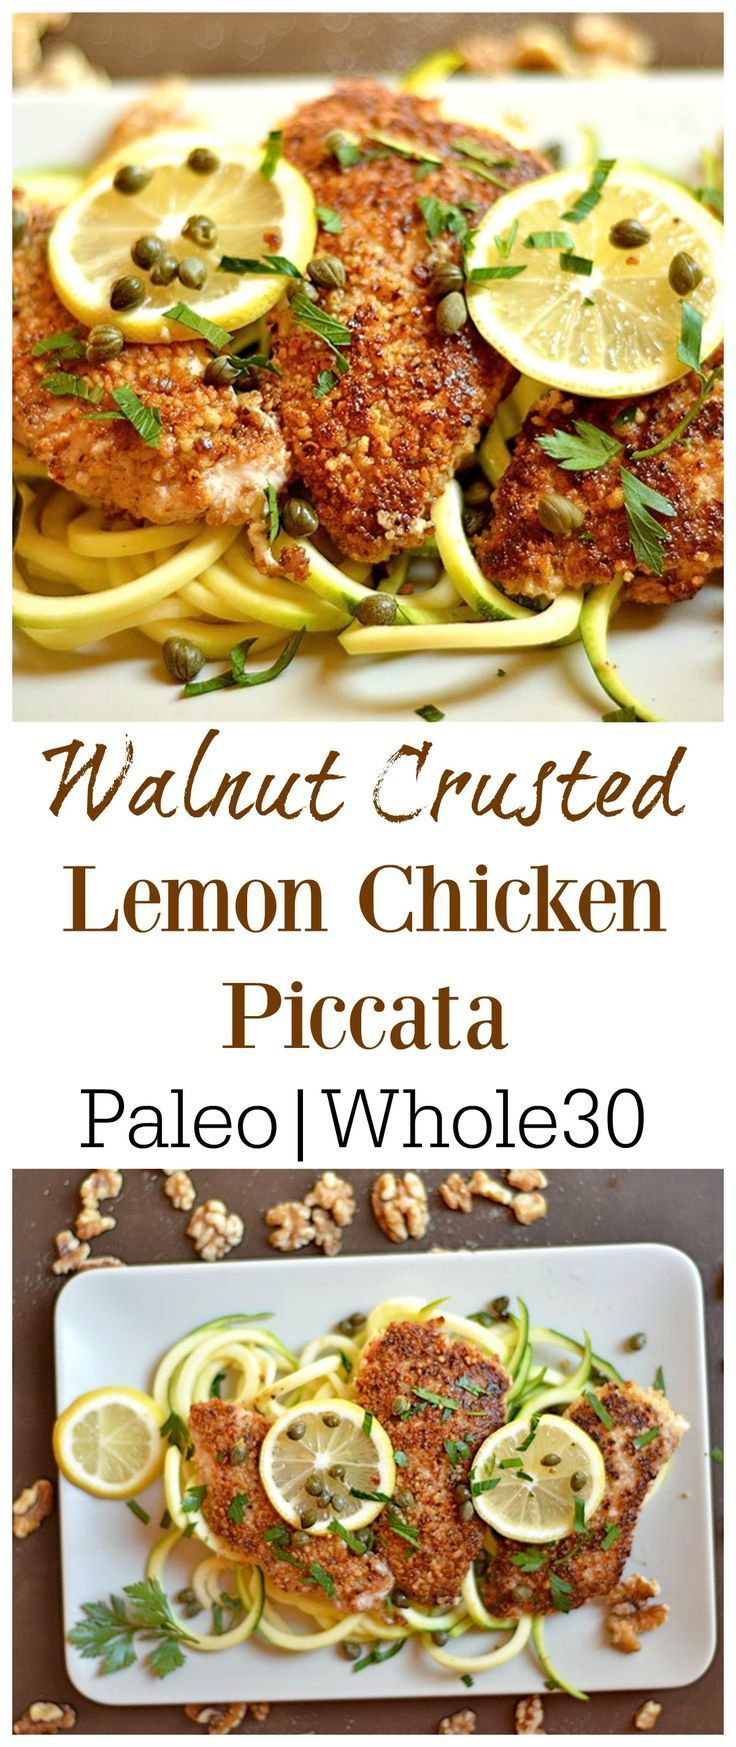 20 minute, One pan dish that is packed with flavor!! GF version of traditional Chicken Piccata. Whole30 & Paleo approved.